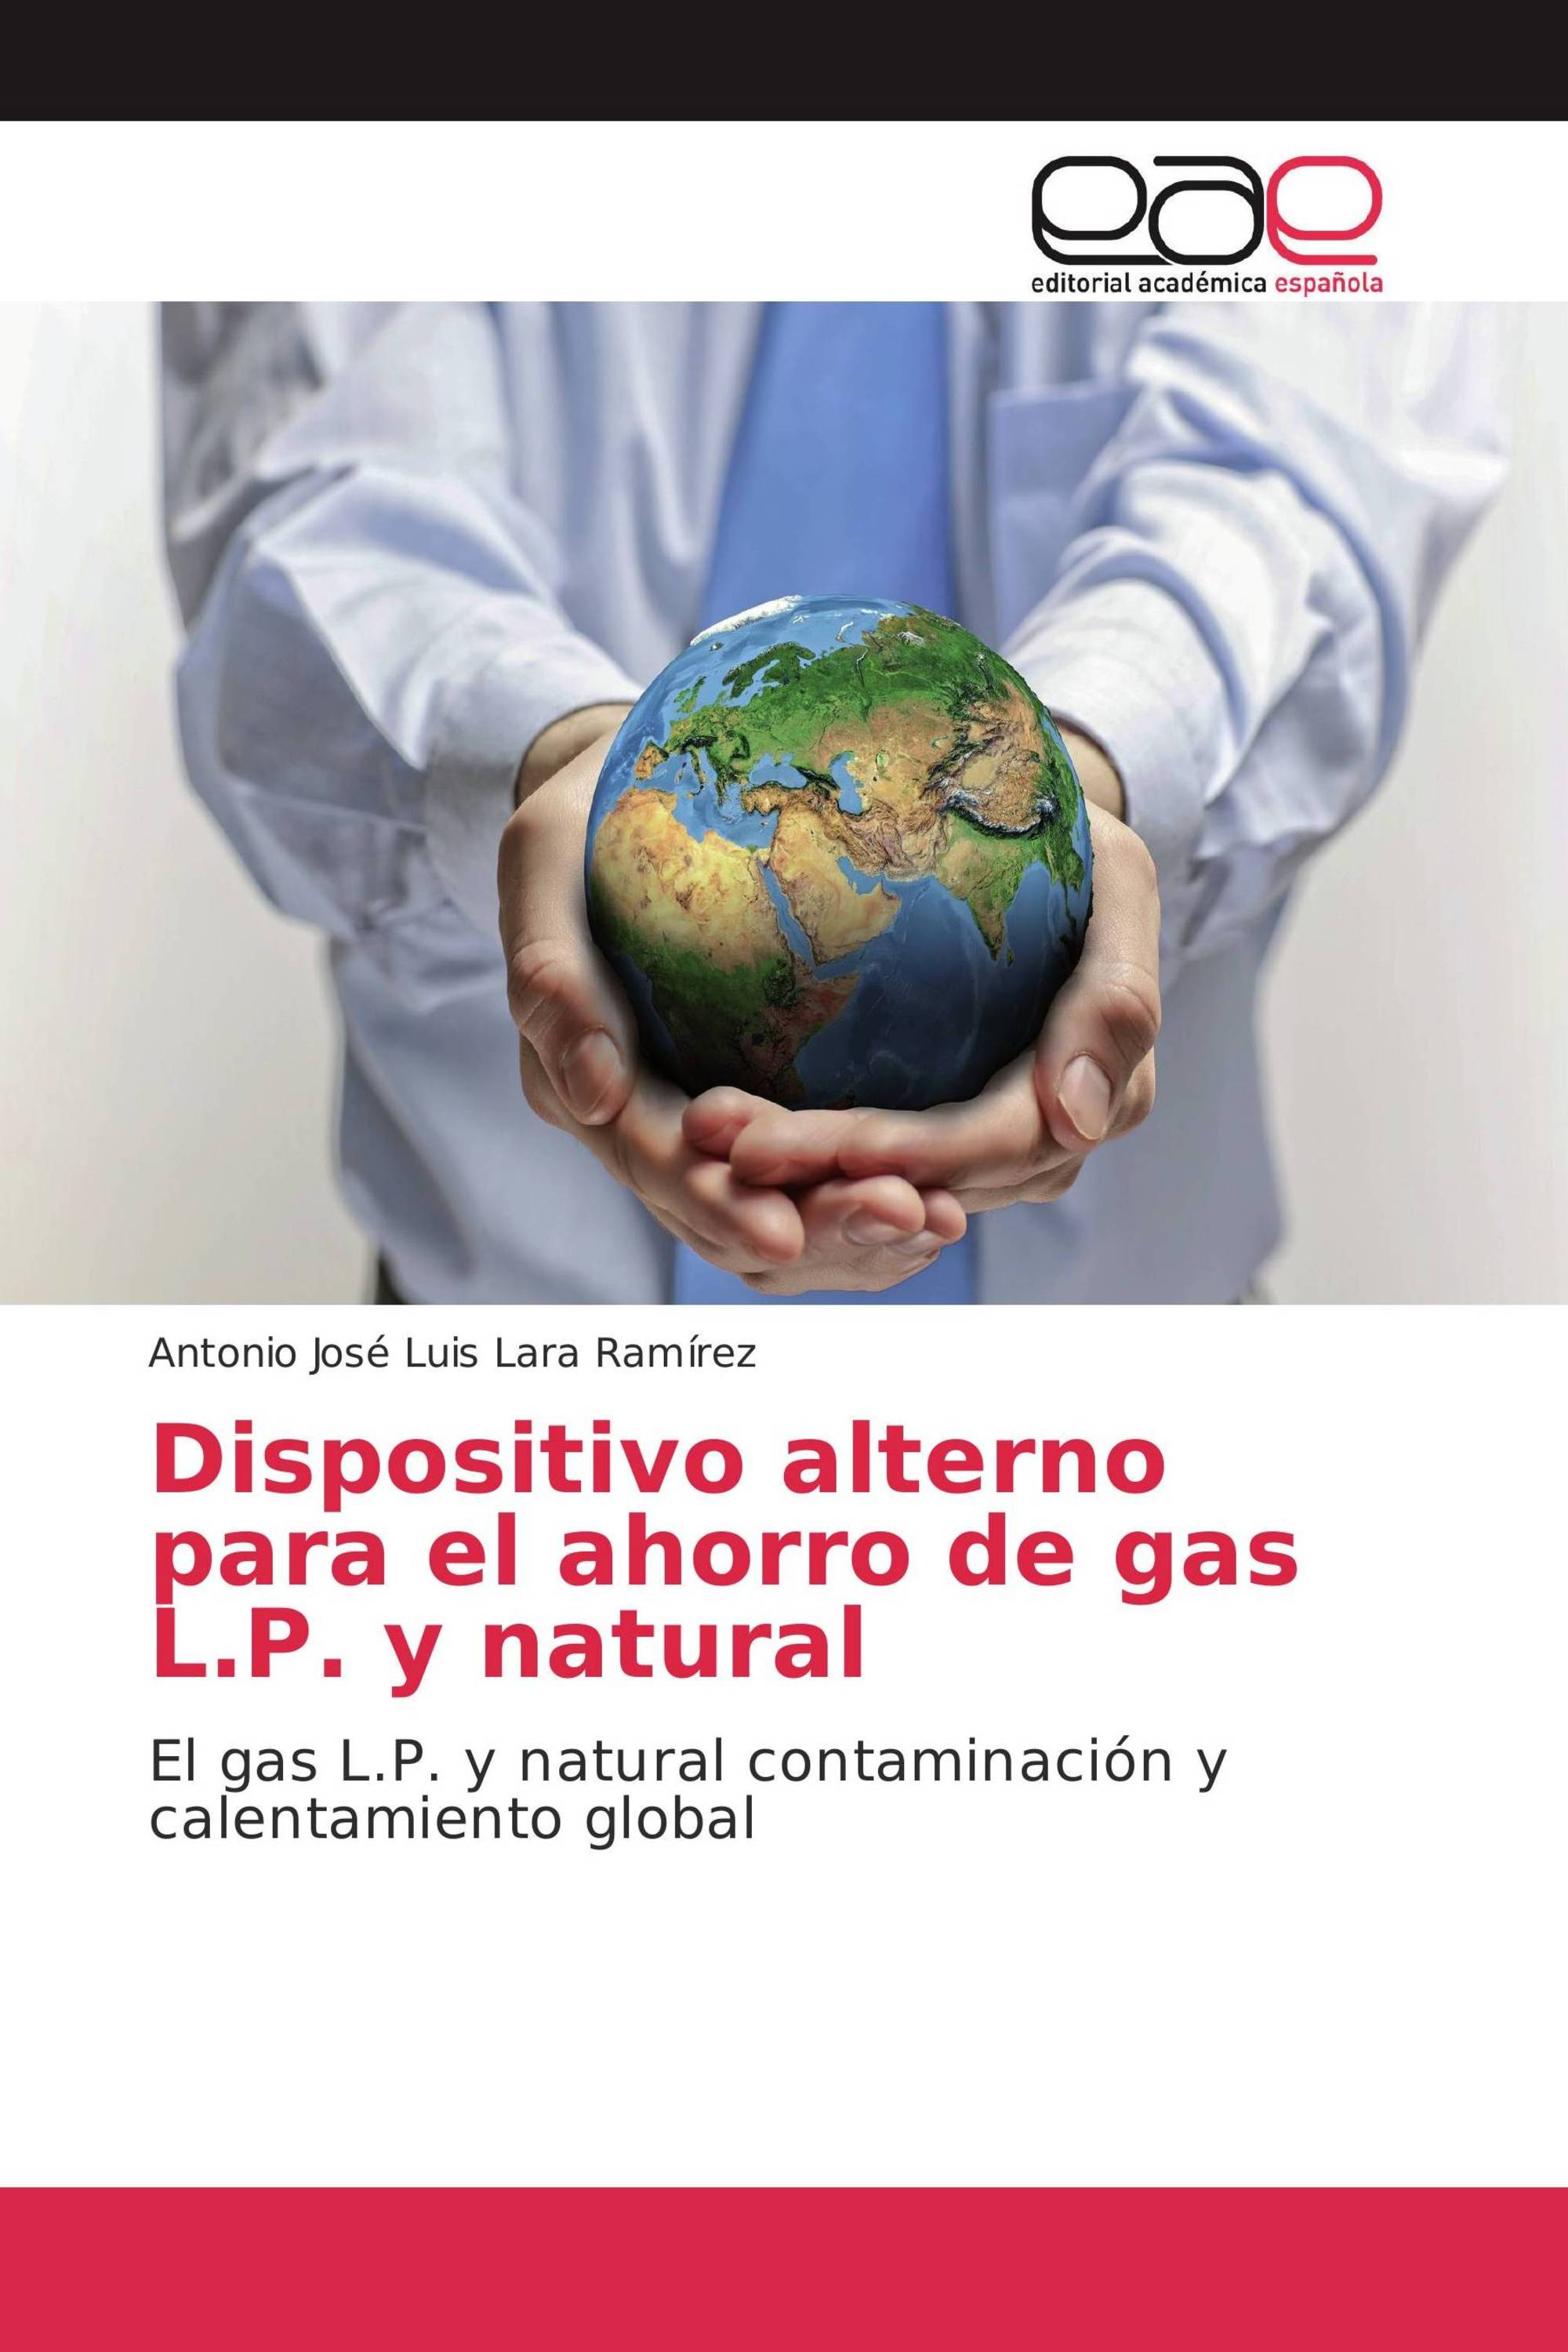 Dispositivo alterno para el ahorro de gas L.P. y natural